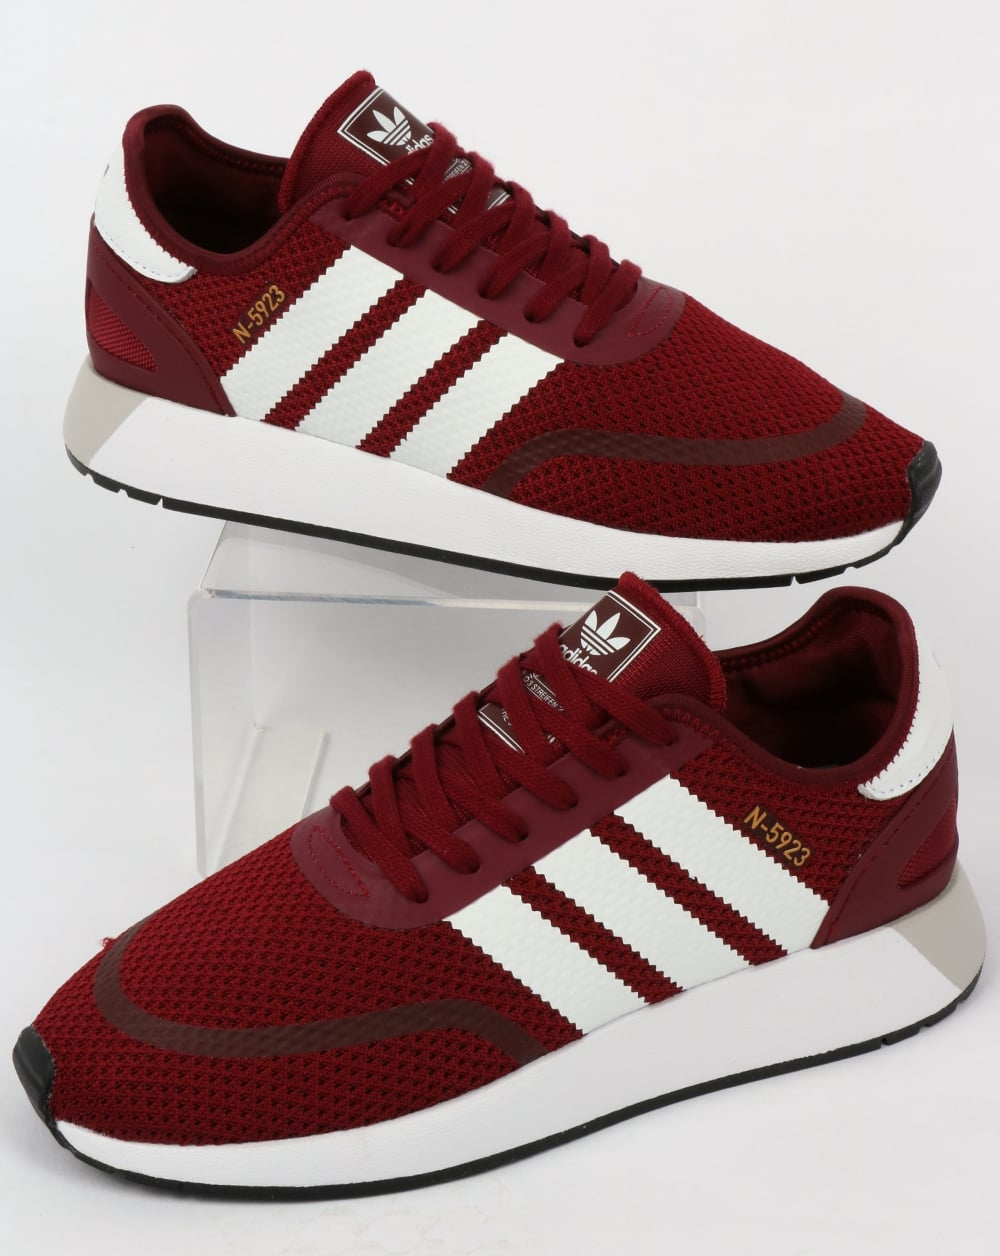 94c73ee02ca59b adidas Trainers Adidas N-5923 Trainers Burgundy White